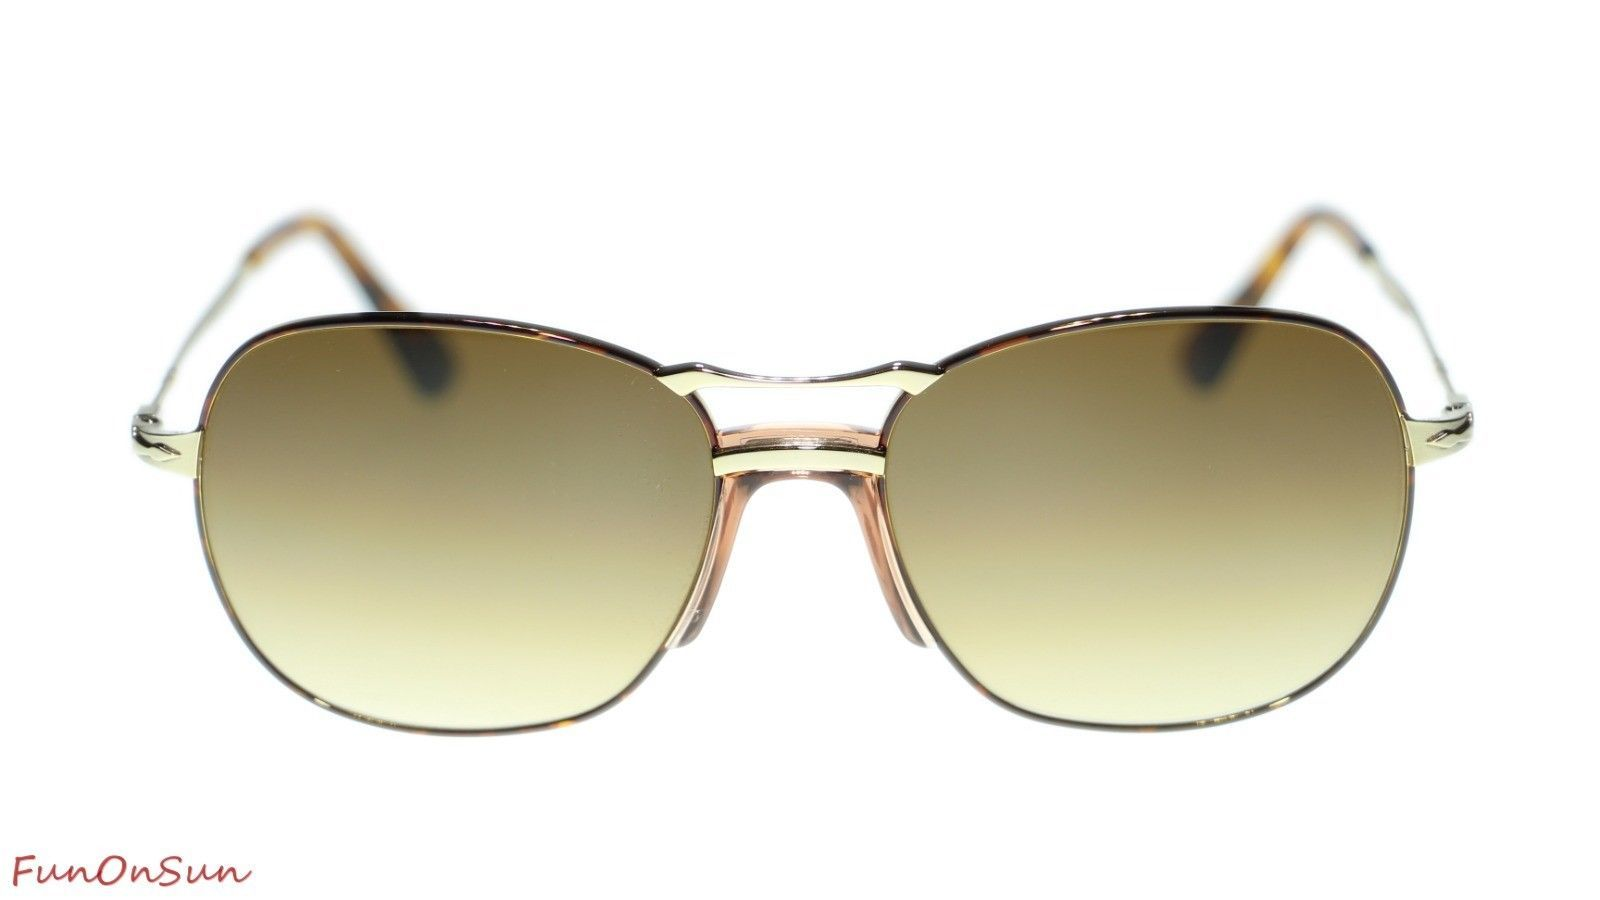 Persol Mens Sunglasses PO2449S 107551 Havana Gold/Clear Gradient Brown Lens 56mm